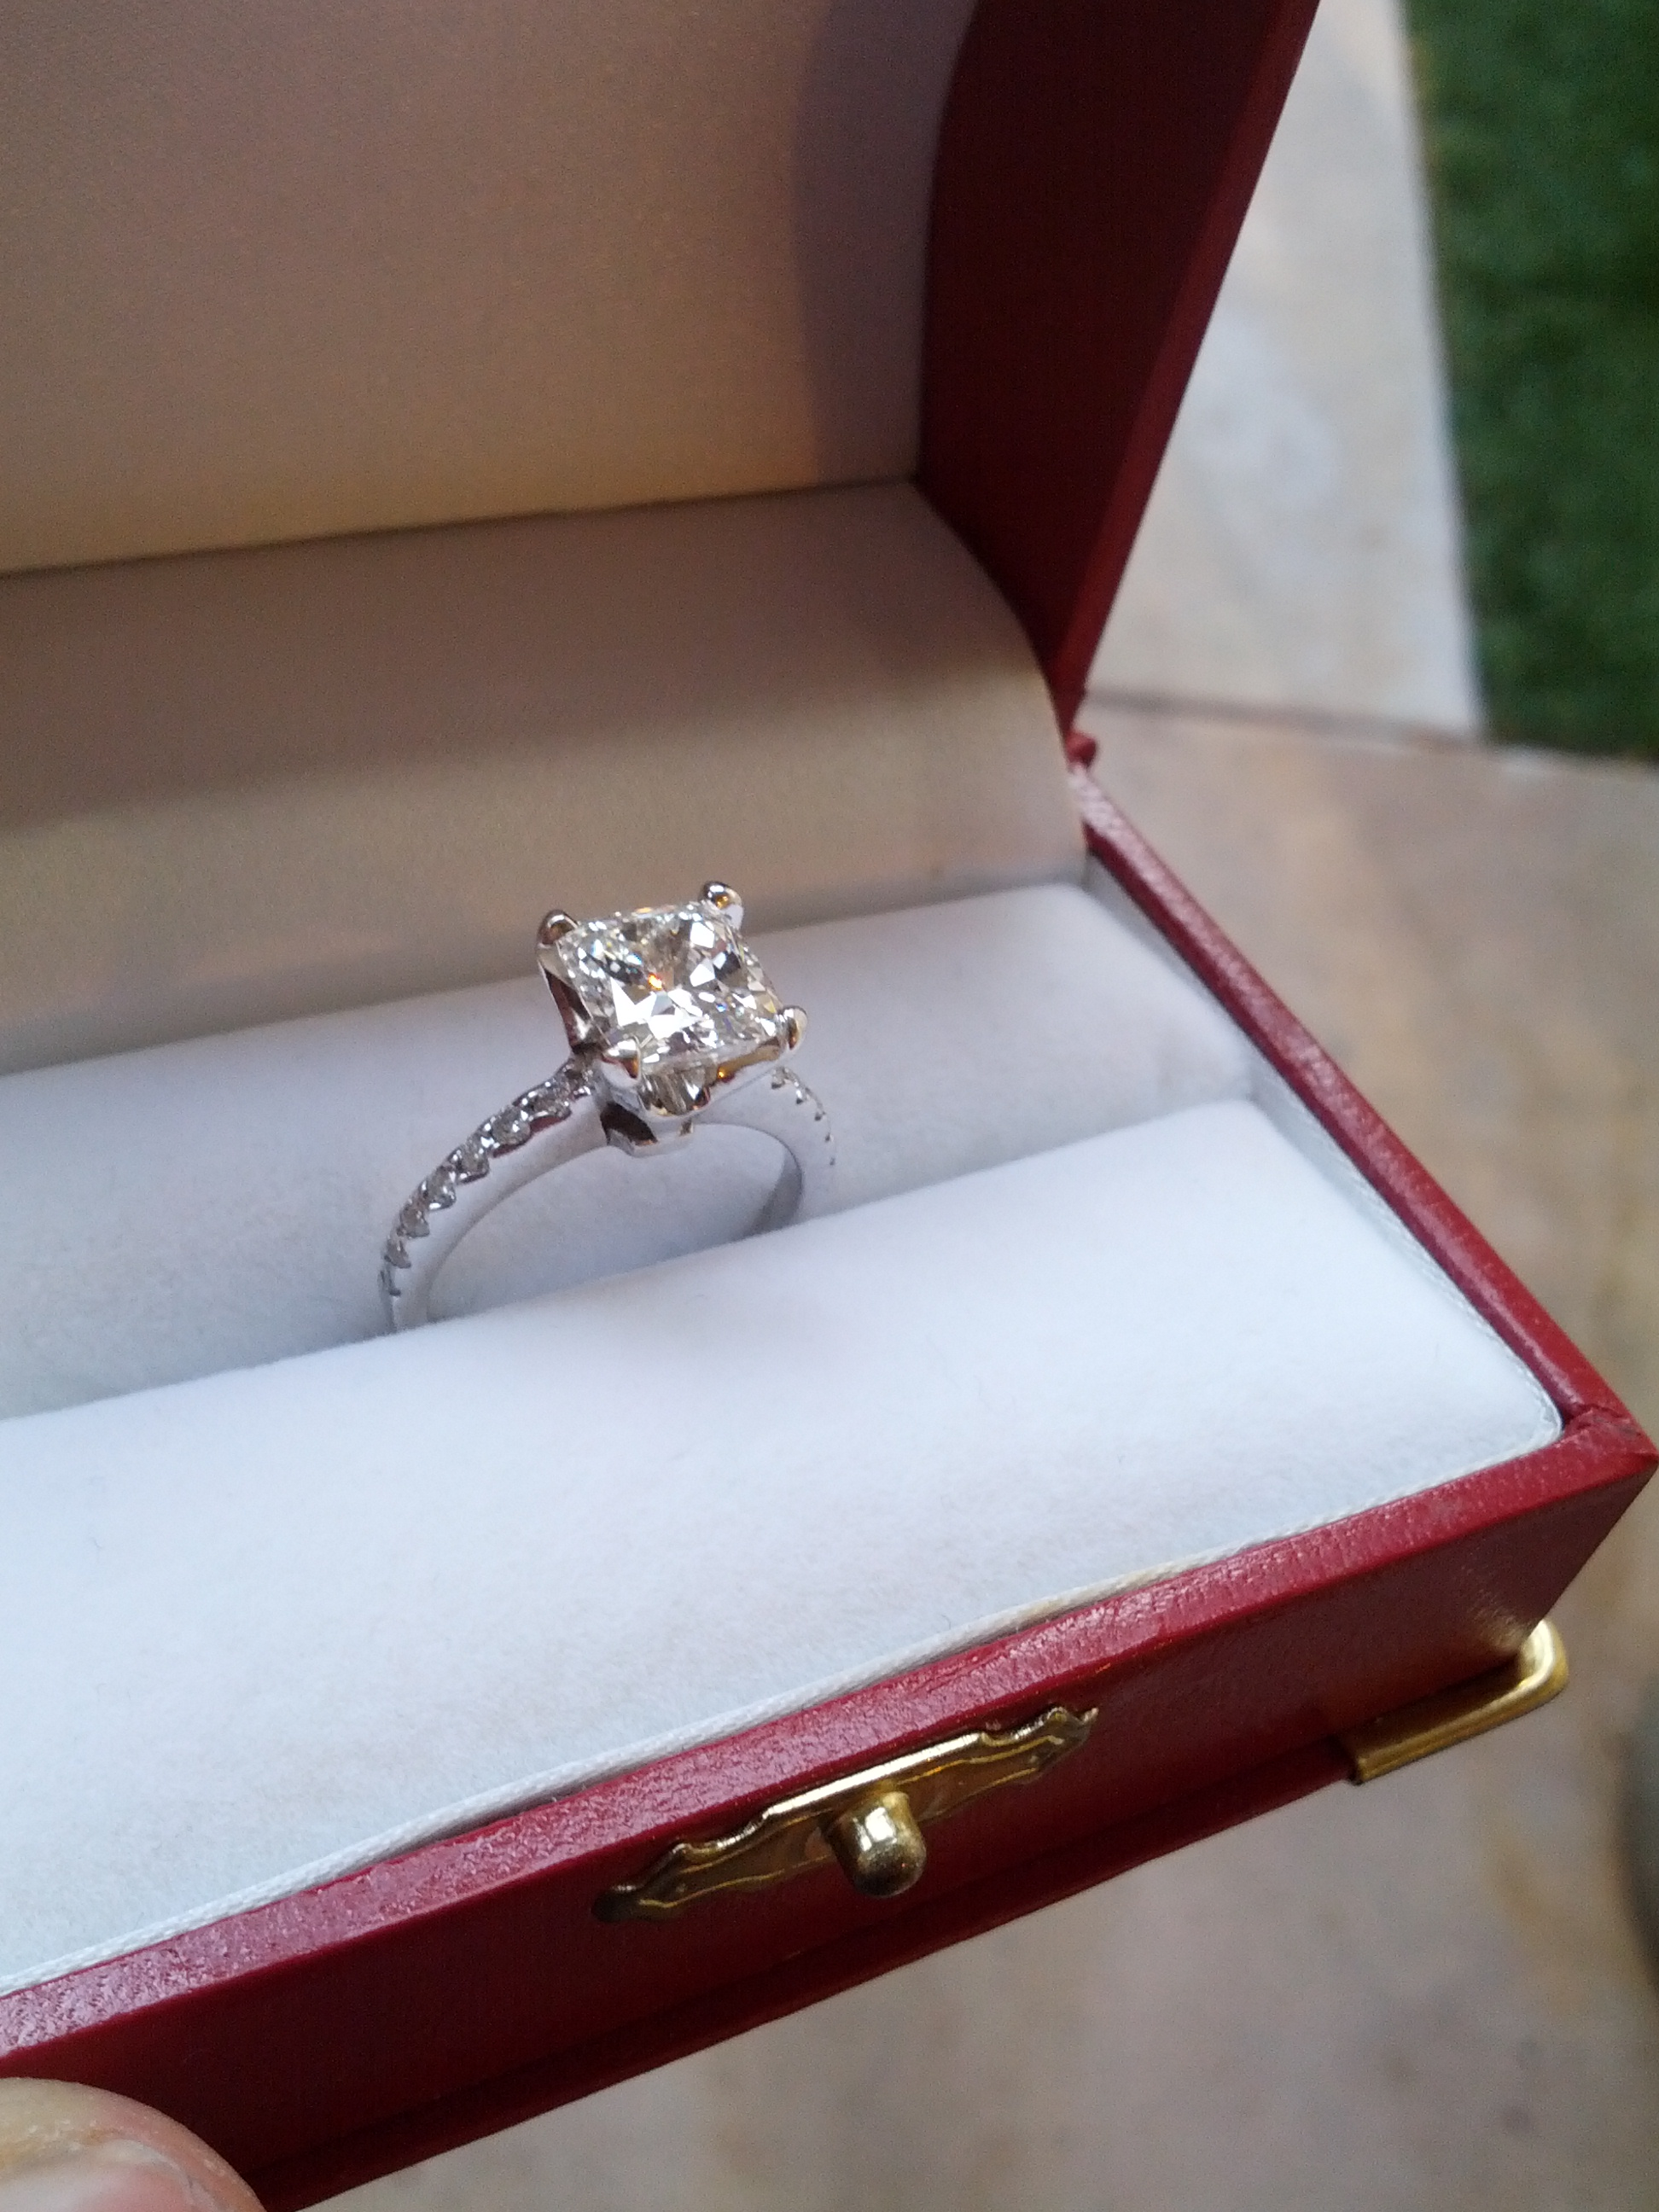 Reserved For Lance Not For Sale 2 02 Carat H Color Vs1 Cushion Cut Engagement Ring With Wedding Band